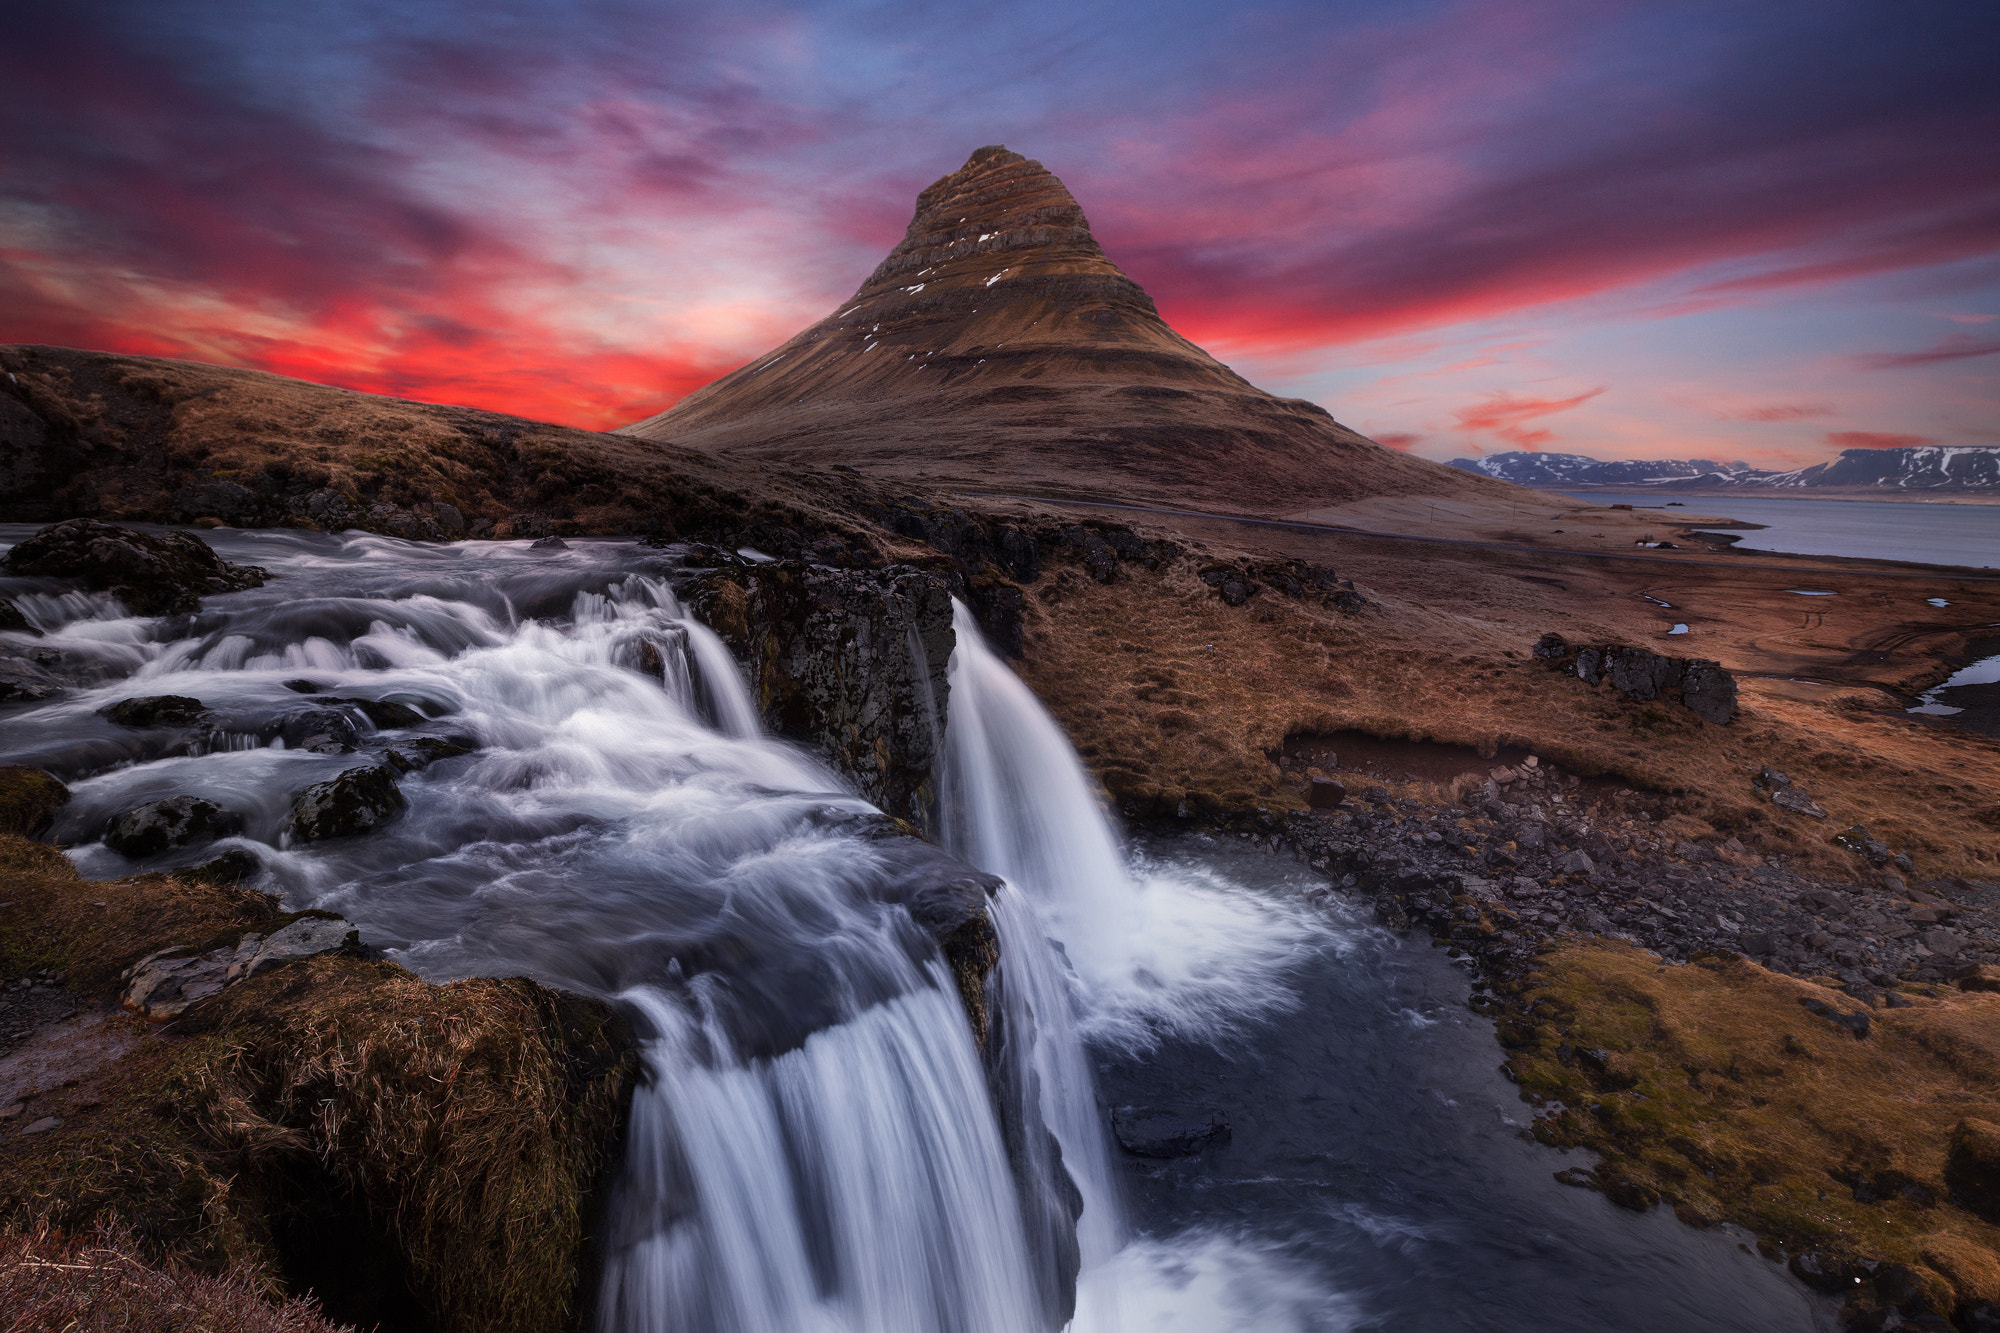 Photograph Kirkjufell by Thomas Fliegner on 500px